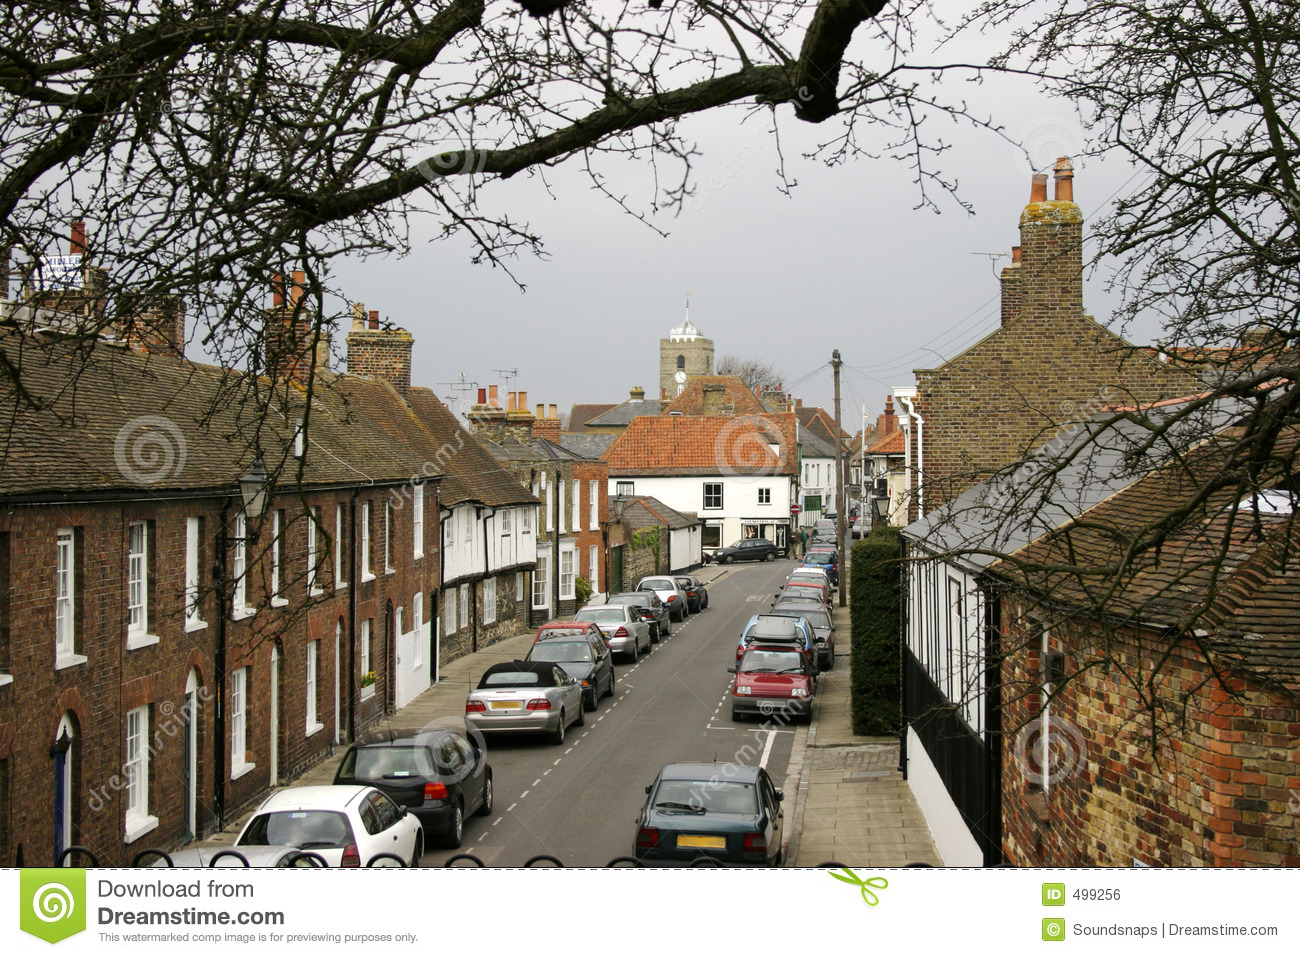 Cars With 3 Rows Of Seats >> English street scene stock photo. Image of overcast, cars - 499256